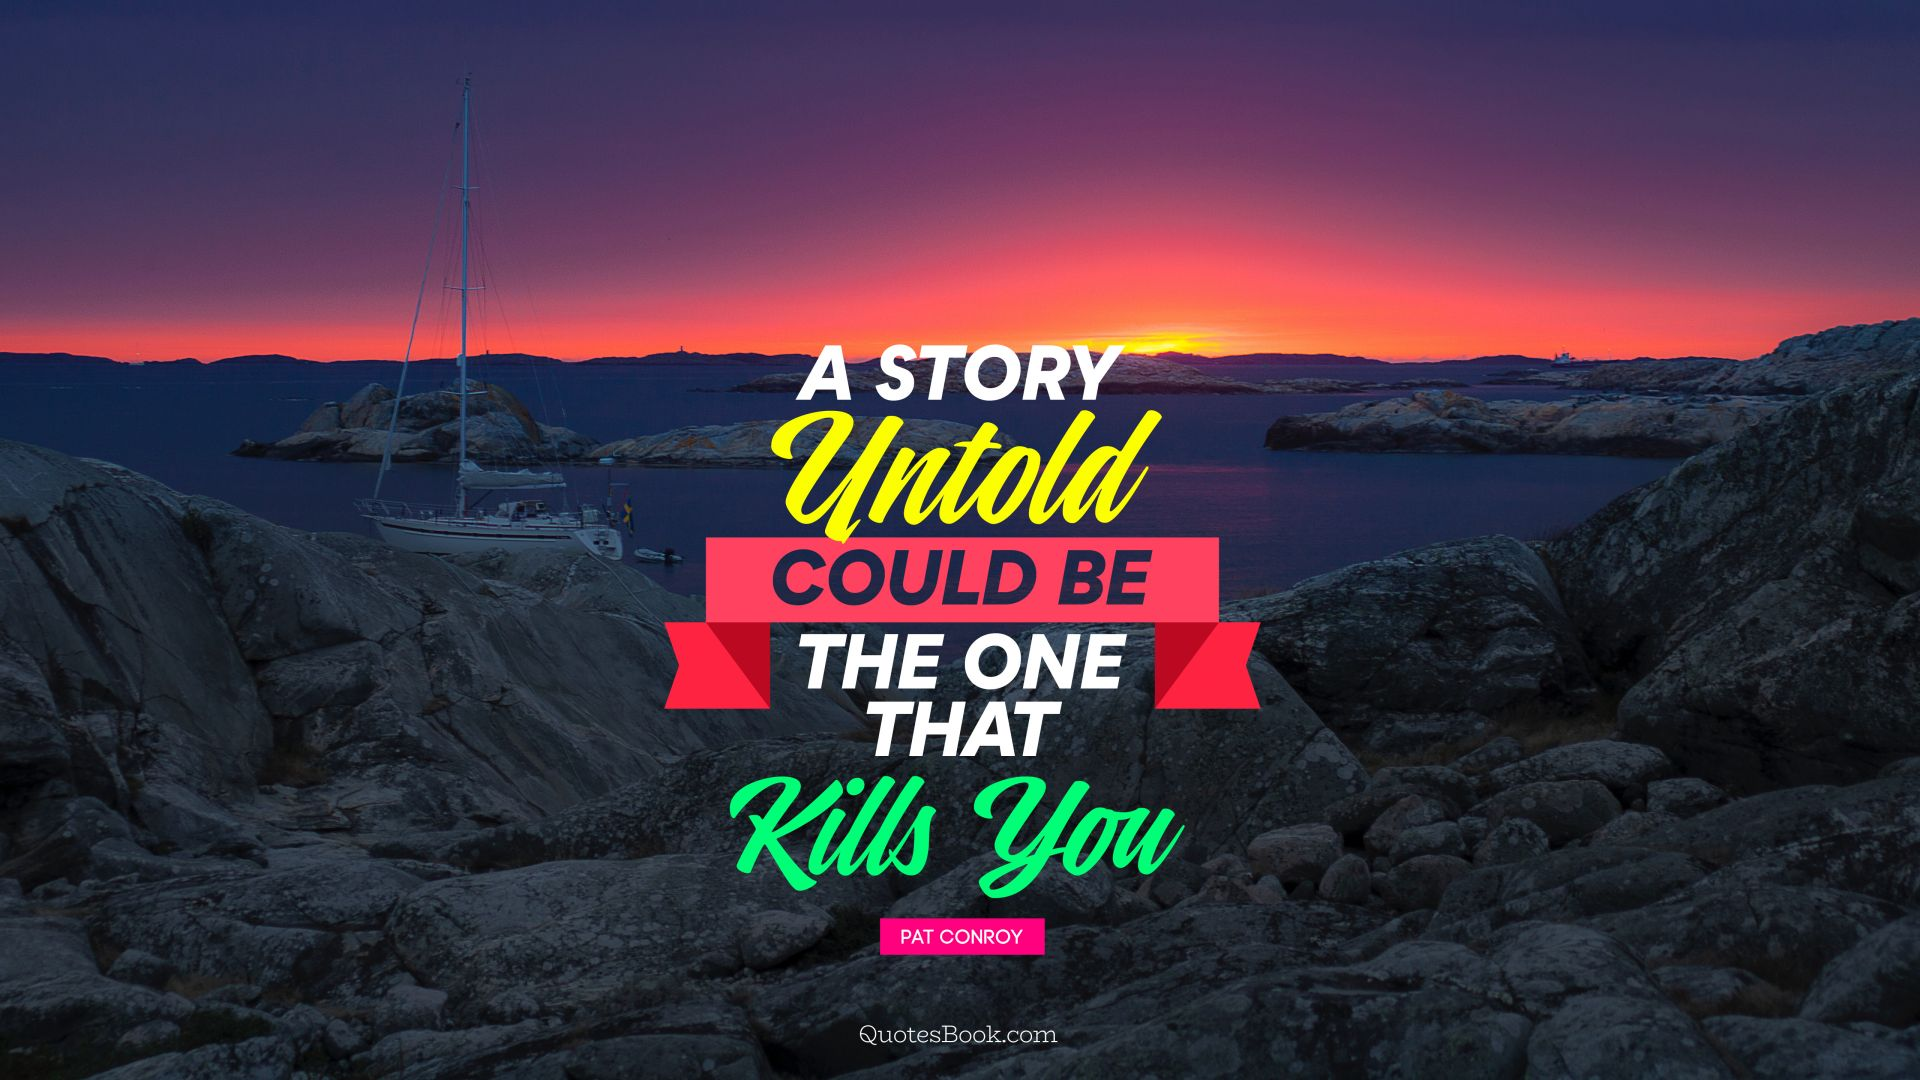 A story untold could be the one that kills you. - Quote by Pat Conroy